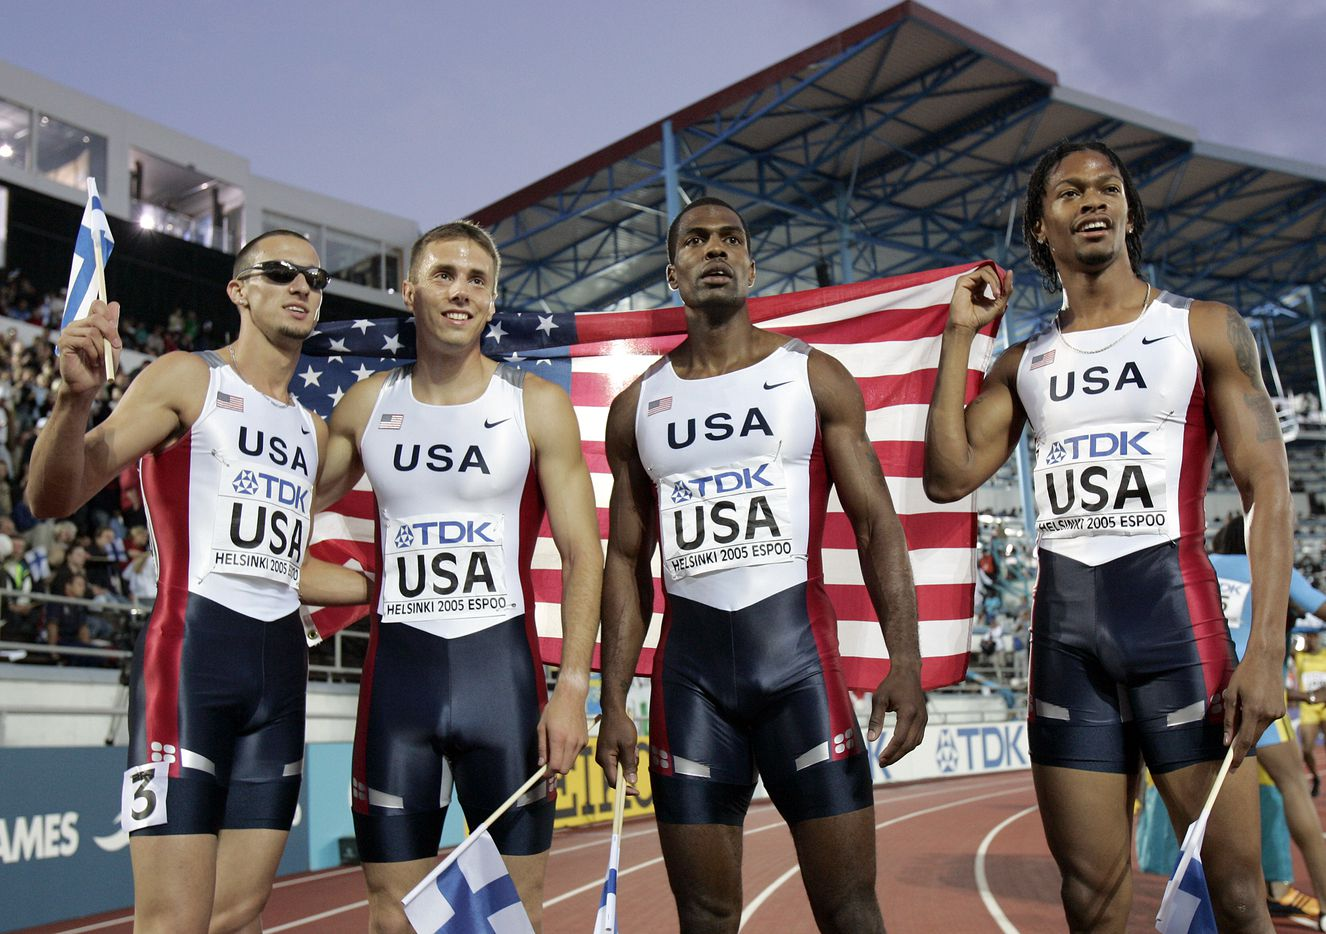 From 2005: The gold medal winning US team, from left: Jeremy Wariner, Andrew Rock, Derrick Brew and Darold Williamson during their victory lap after the Men's 4x400 meter relay final at the World Athletics Championships in Helsinki, Finland, Sunday, Aug. 14, 2005.